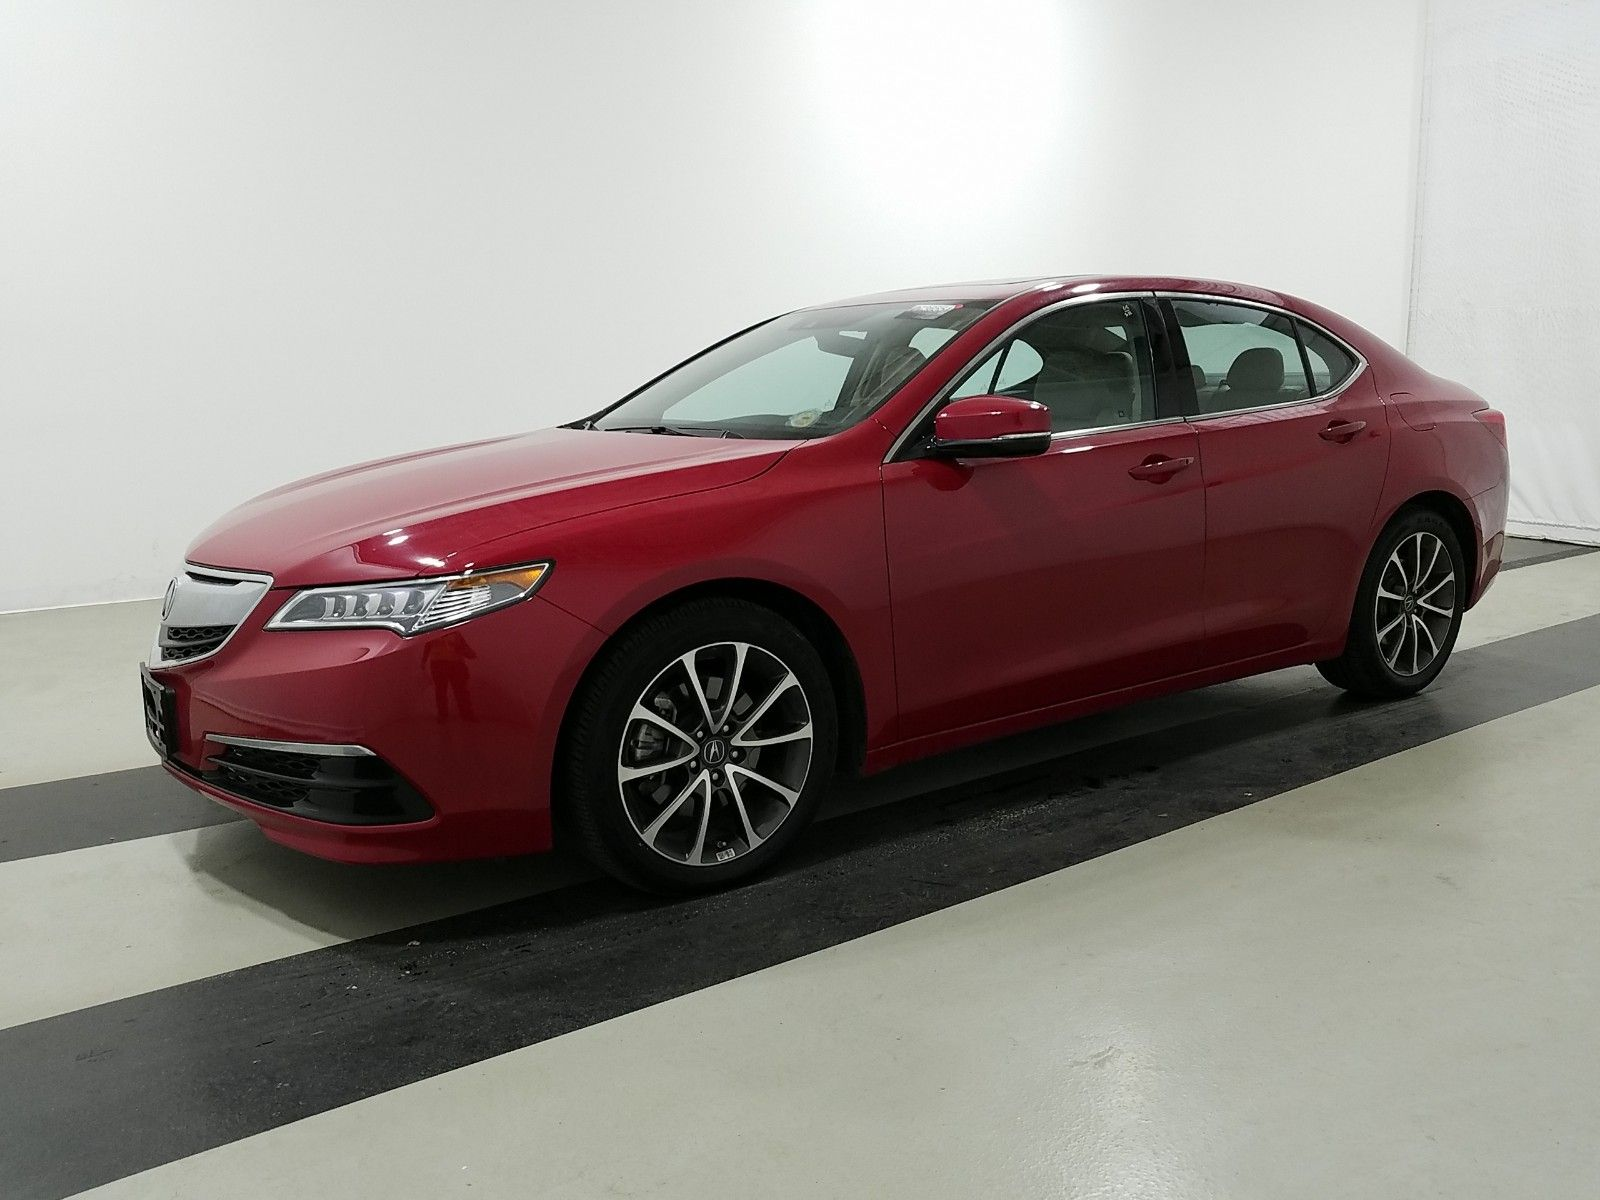 2017 Acura Tlx 3.5. Lot 99913215577 Vin 19UUB3F55HA000955